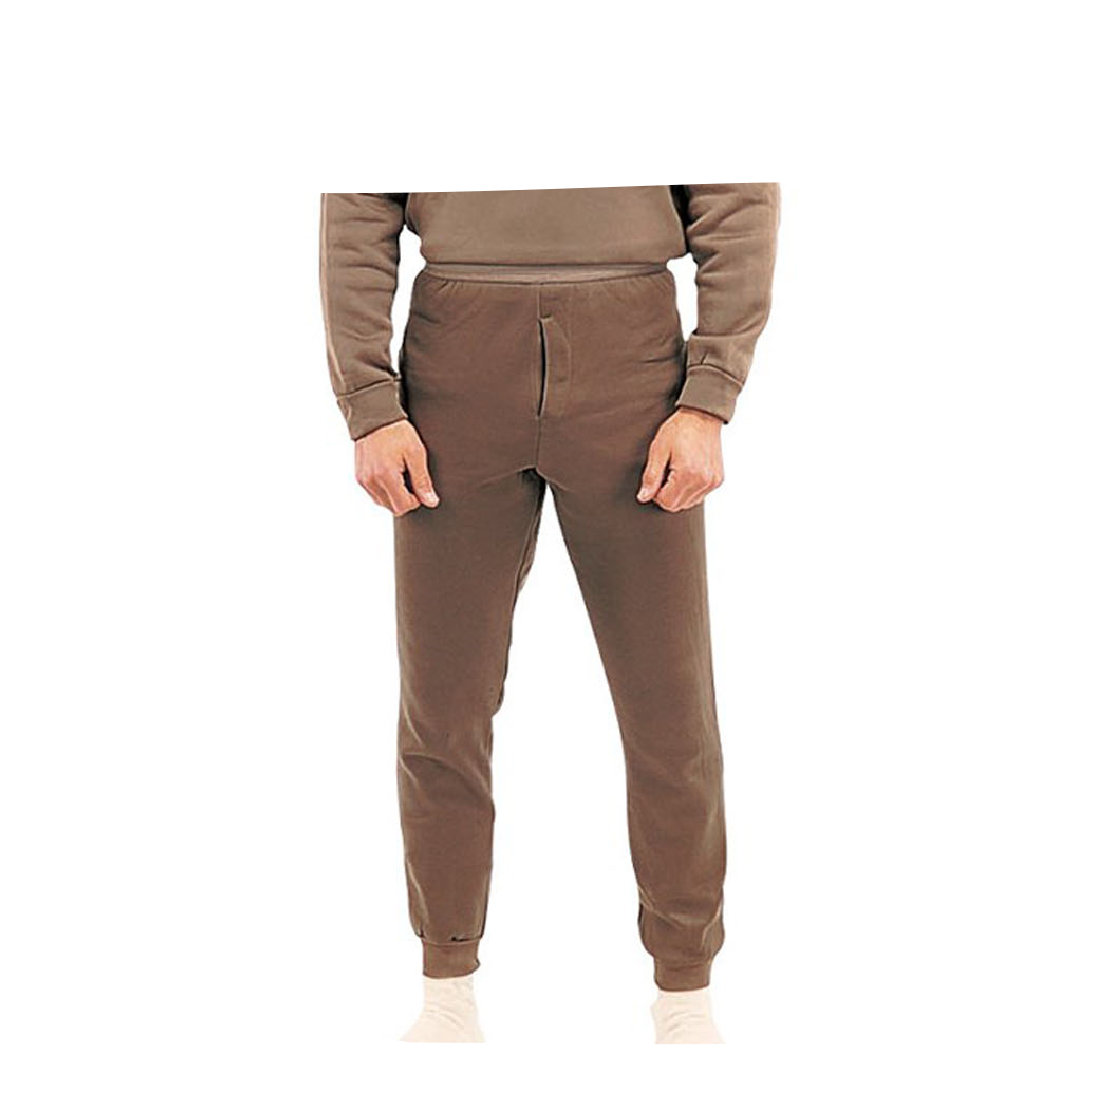 ColdPruf Pants: 95 Men's Gray Merino Wool Blend Thermal Underwear Pants. How many pairs of those thermal long johns do you own? You know, the ones that come in plastic bags so you can't see how flimsy they are until after you've bought them? ColdPruf 95 Men's Platinum Pants aren't sold in a plastic bag, and they won't wear out after the first.